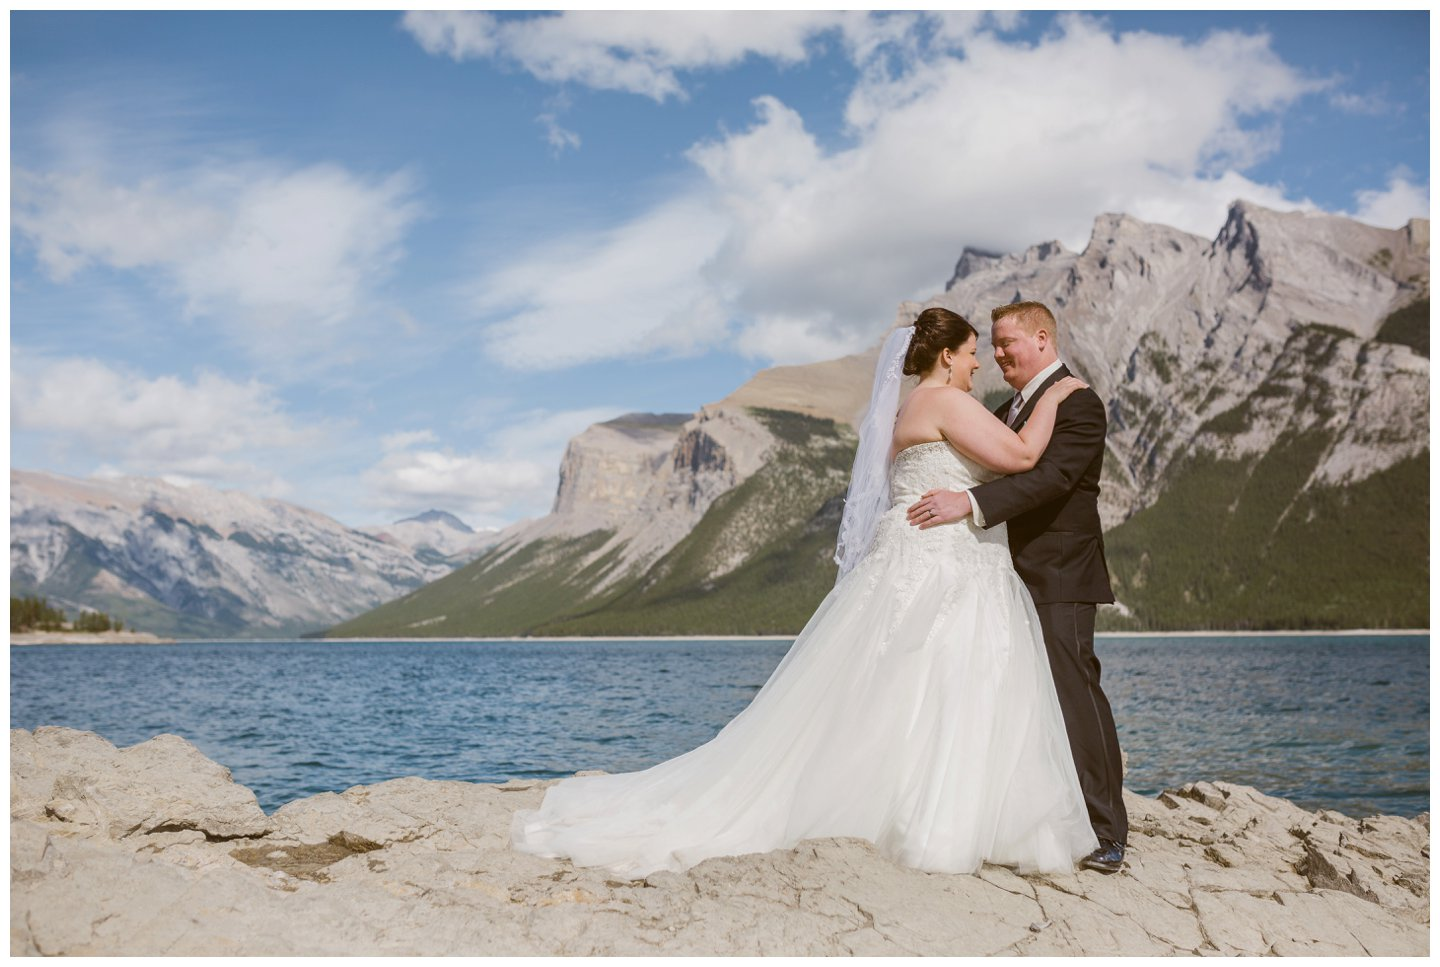 Canmore_Wedding_Photographer_0032.jpg